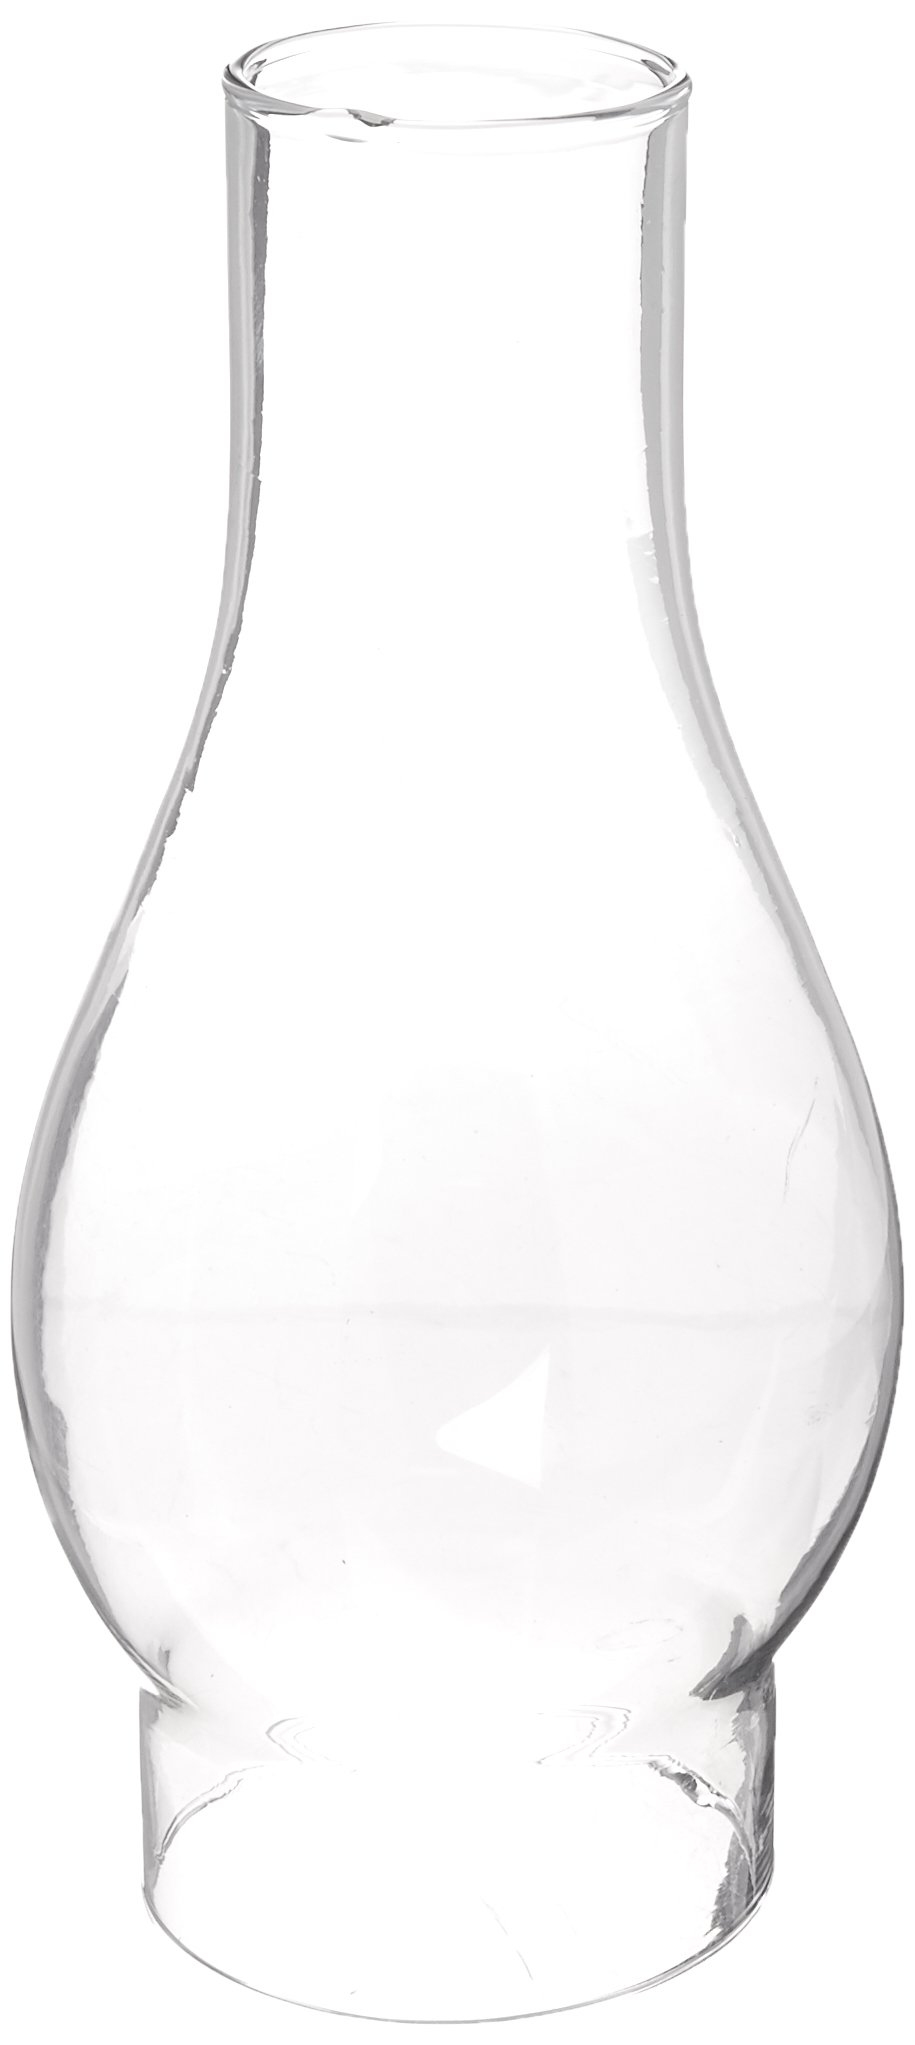 Westinghouse Lighting Corp 8-1/2-Inch Chimney, Clear - 2 Pack by Westinghouse (Image #1)